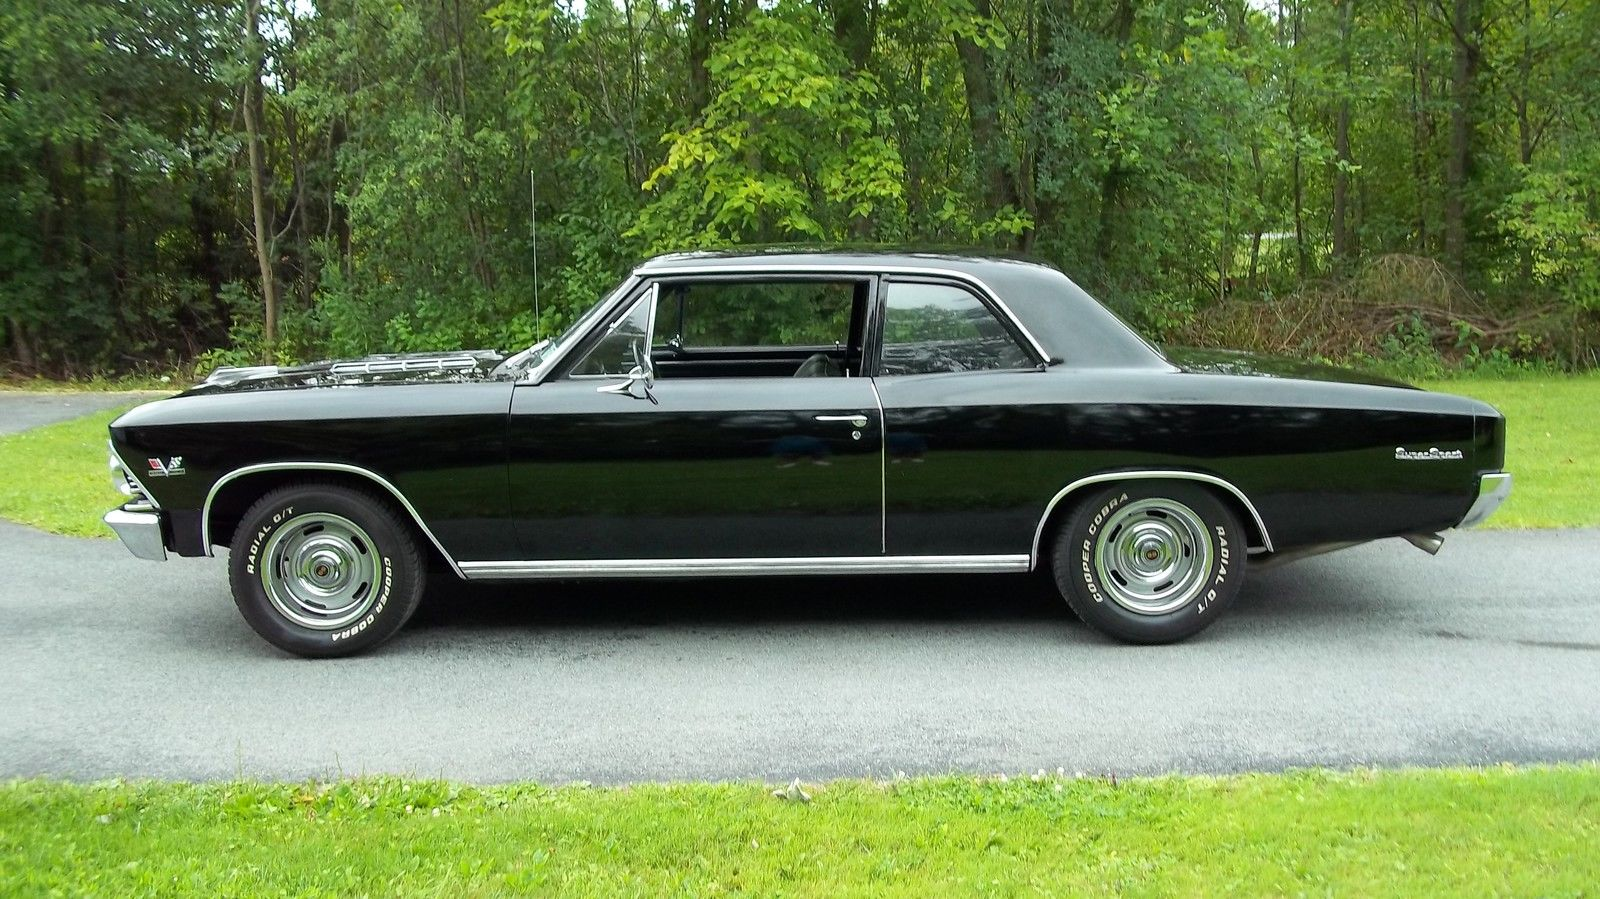 1966 Chevelle Ss Bb 454 Four Speed Black Beautiful Tribute Chevrolet 396 Ss396